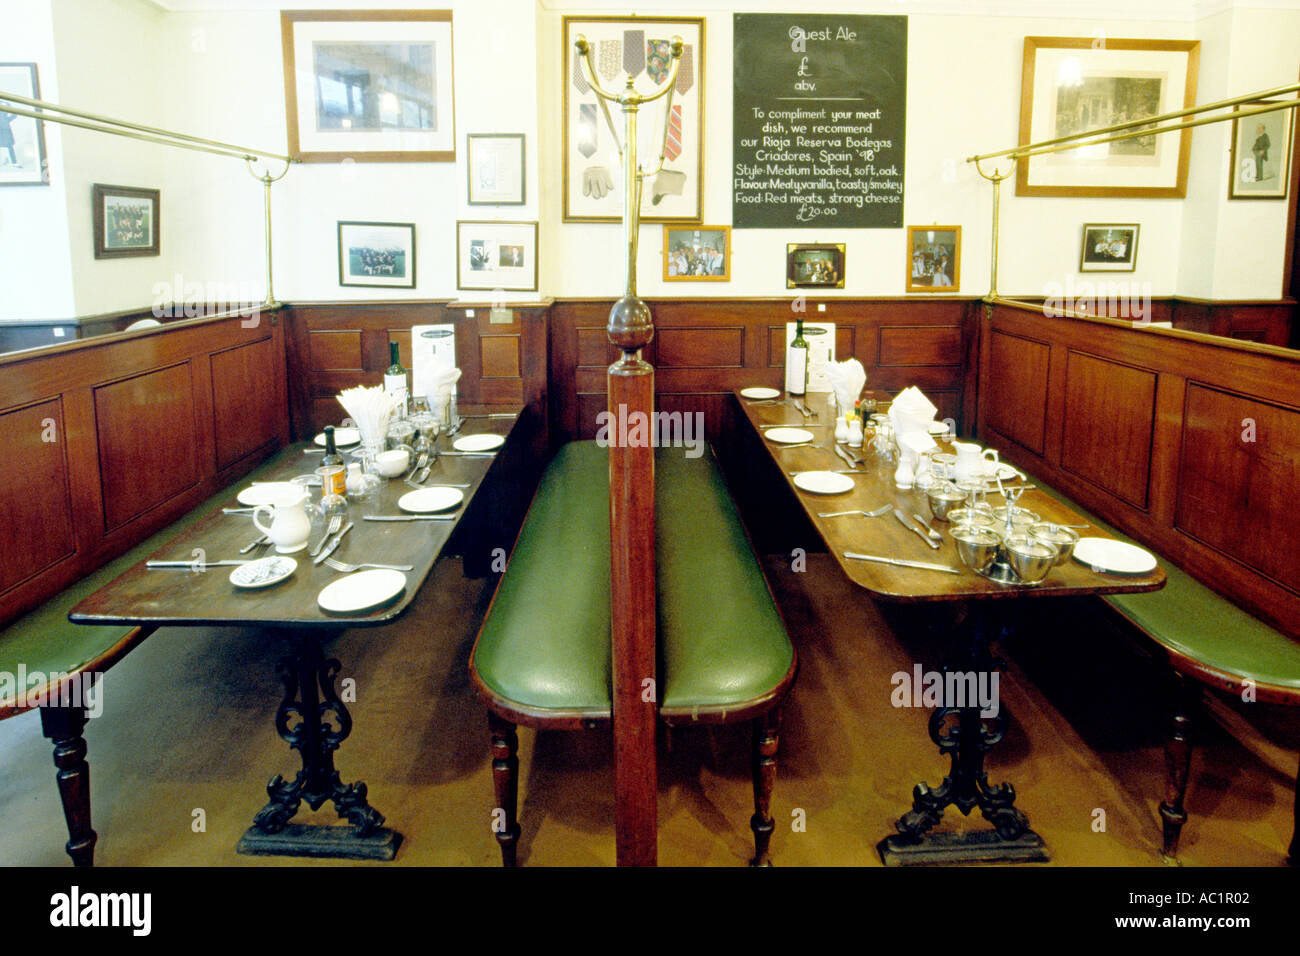 The interior of the Victorian-era Simpson's Tavern in the city of London. - Stock Image